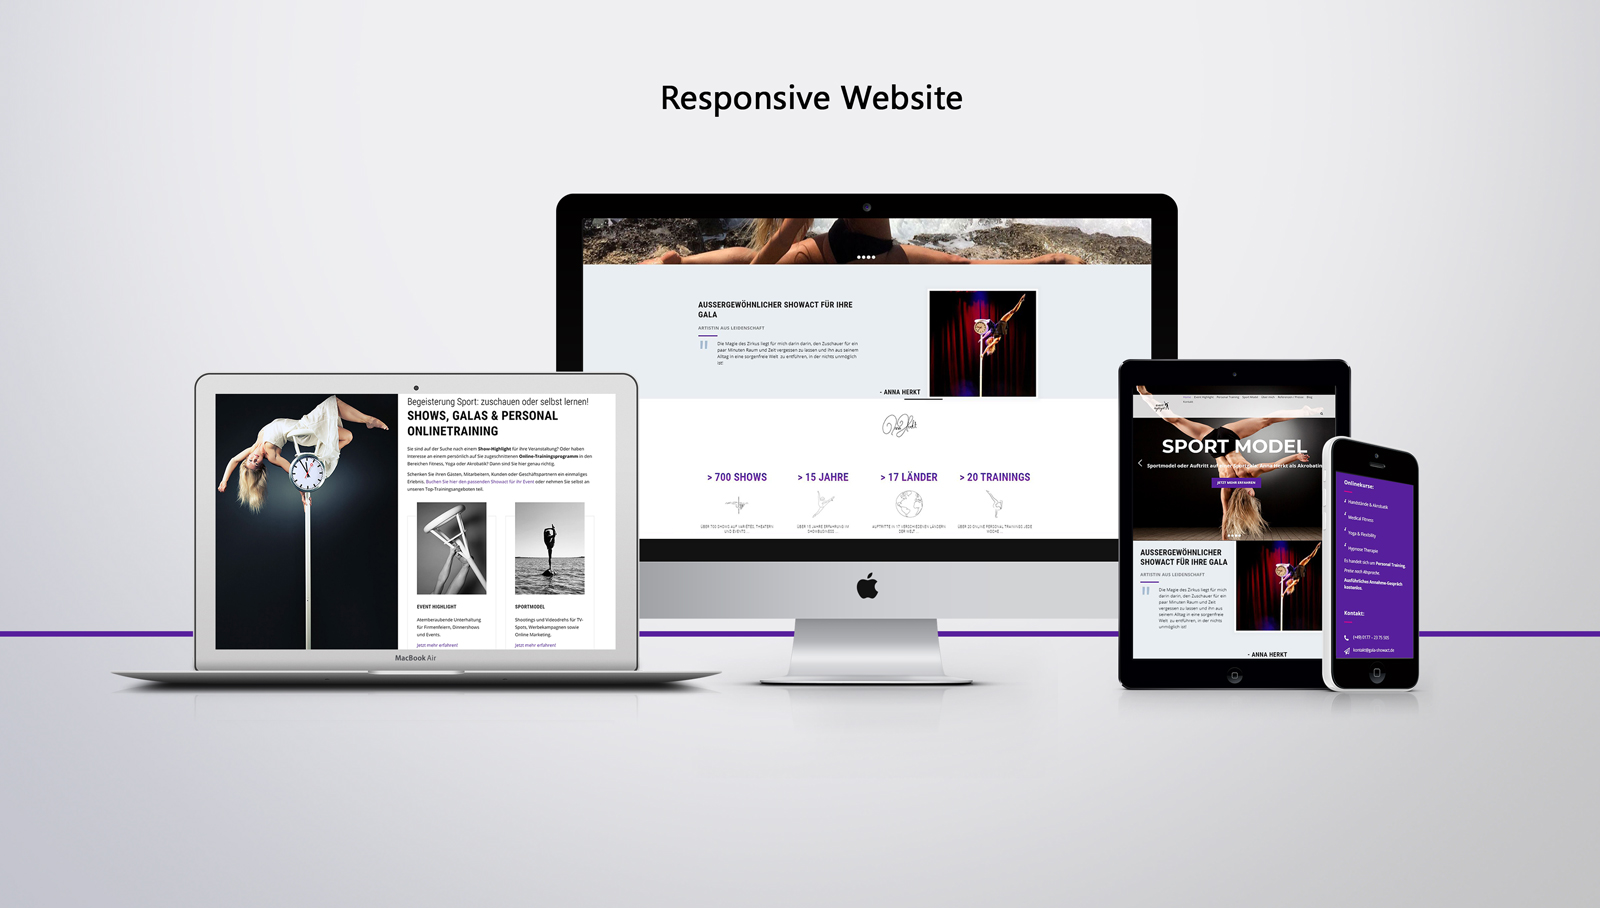 Responsive Website mit WordPress mit modernem Webdesign